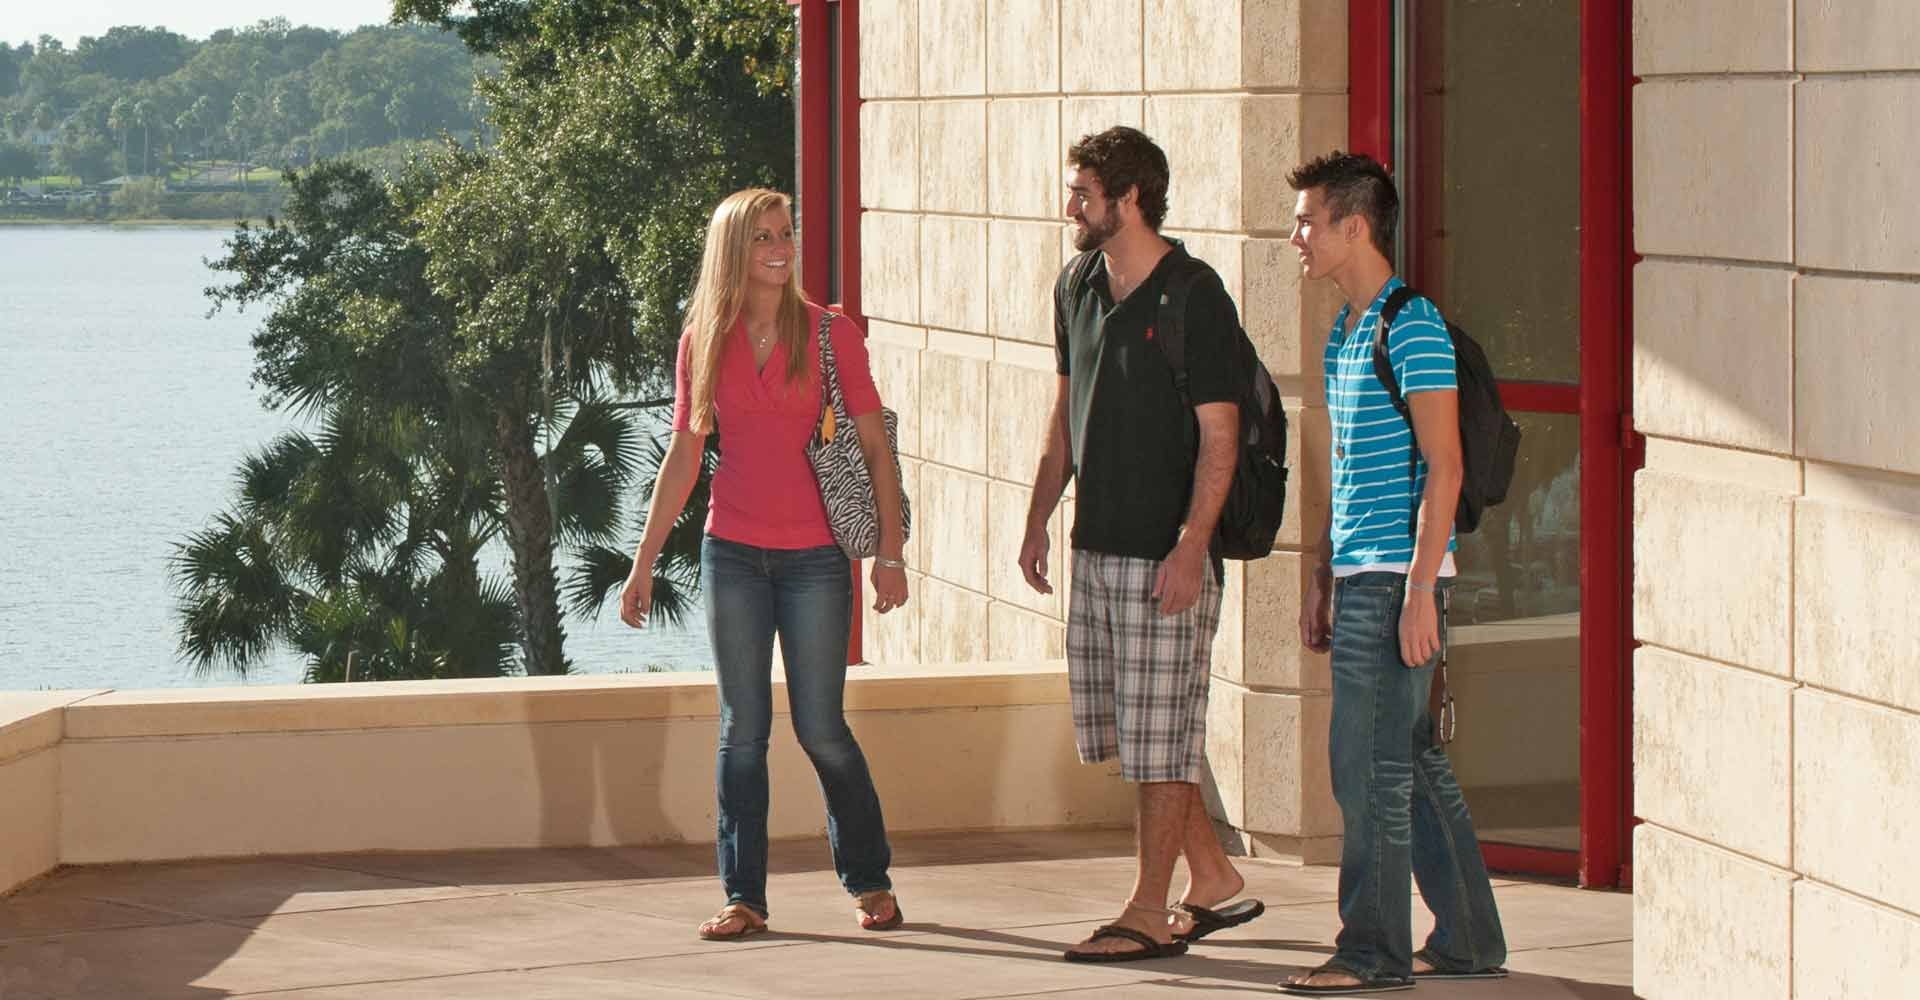 Students walking around the beautiful Florida Southern College campus.